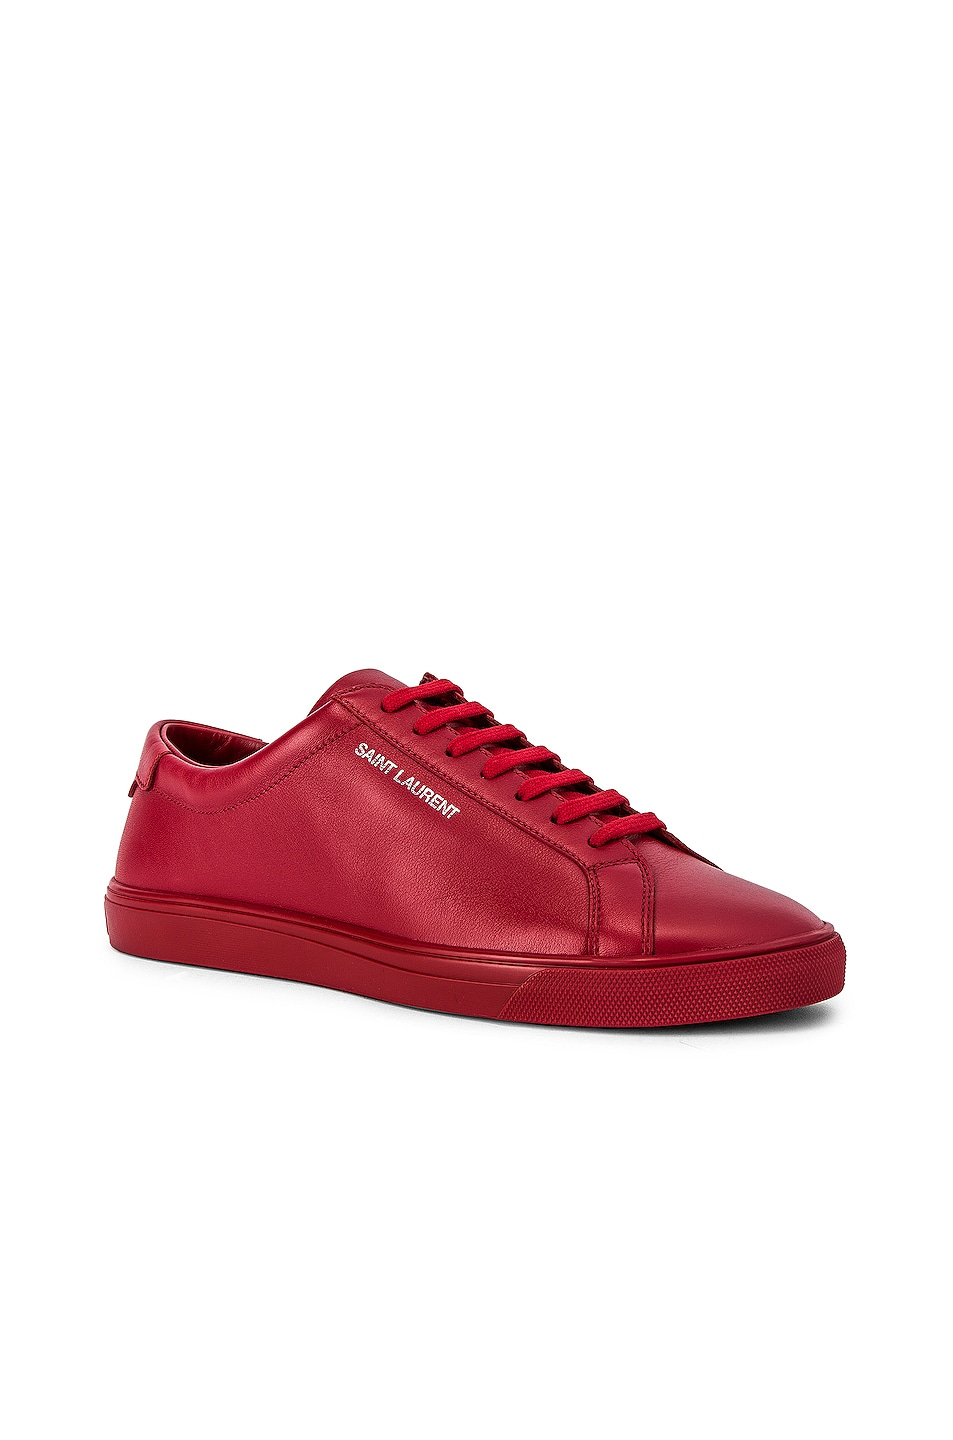 Image 2 of Saint Laurent Andy Low Top Sneakers in Red